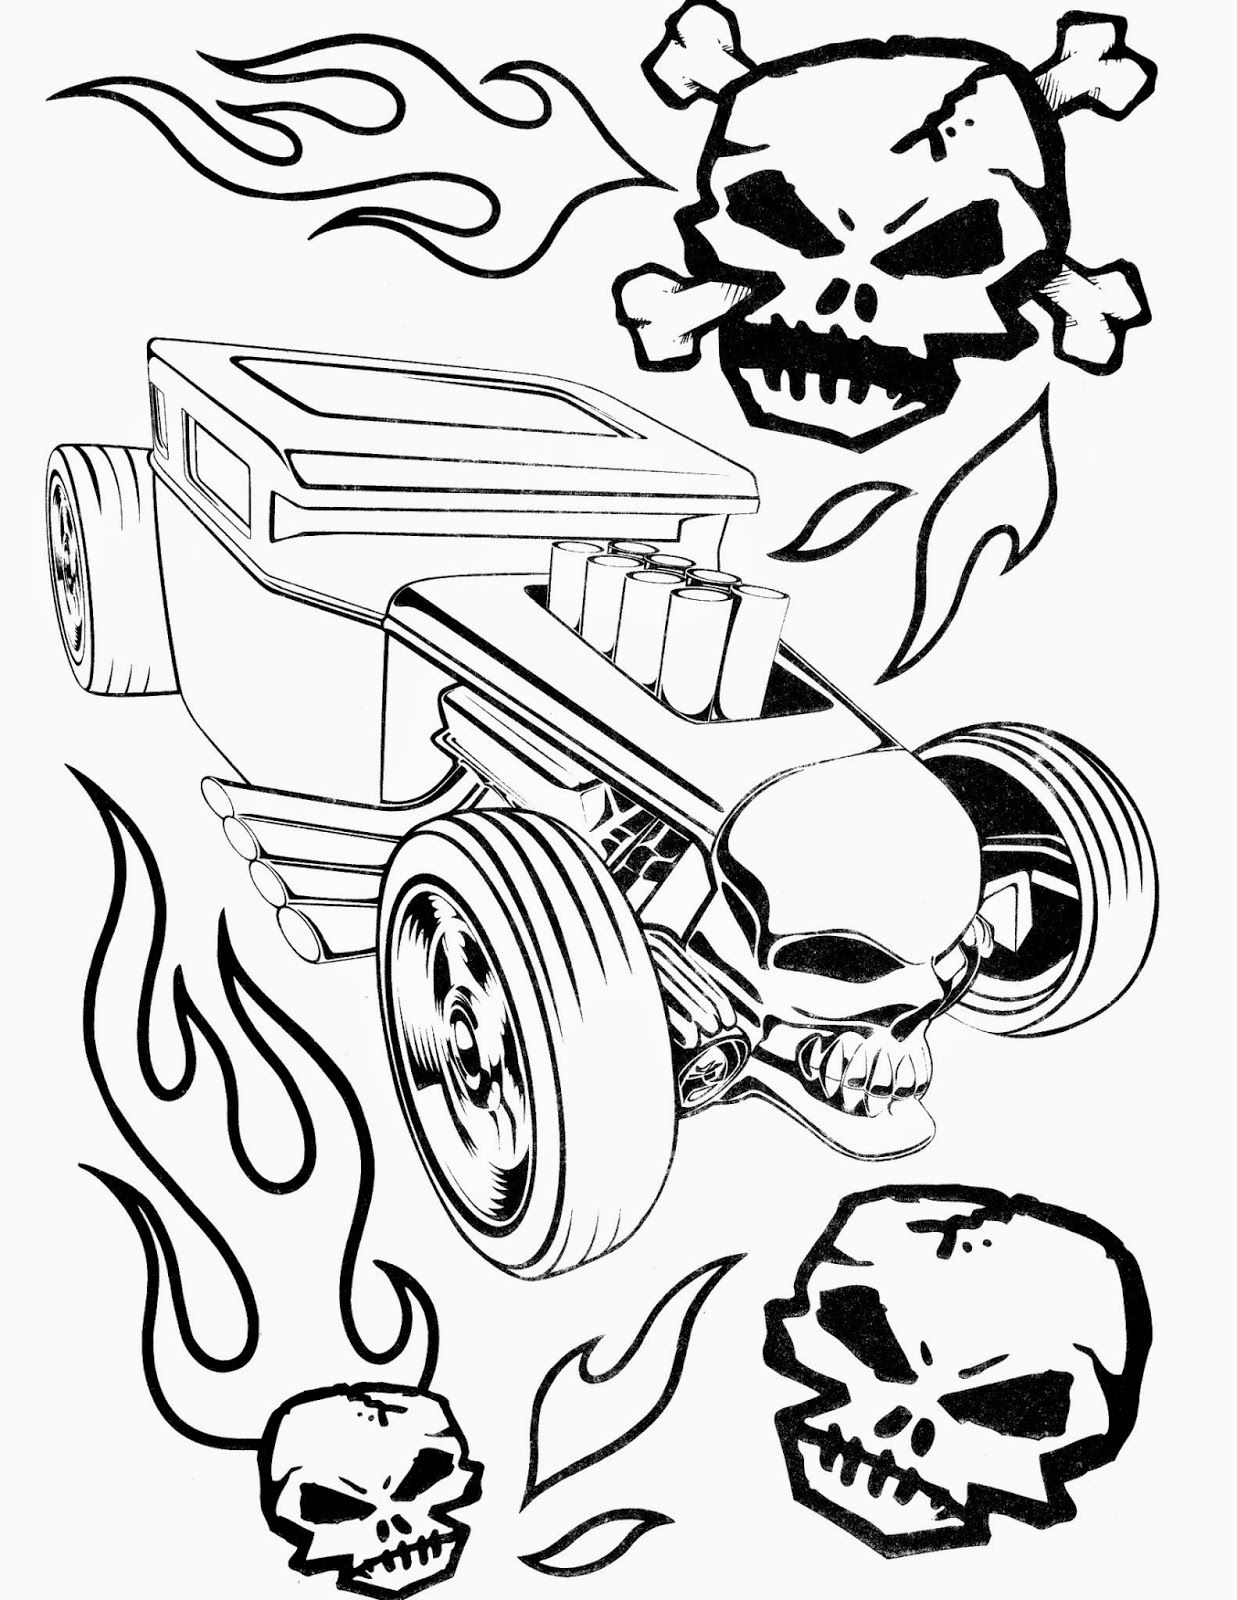 coloring pages matchbox cars matchbox cars coloring pages coloring home cars matchbox pages coloring